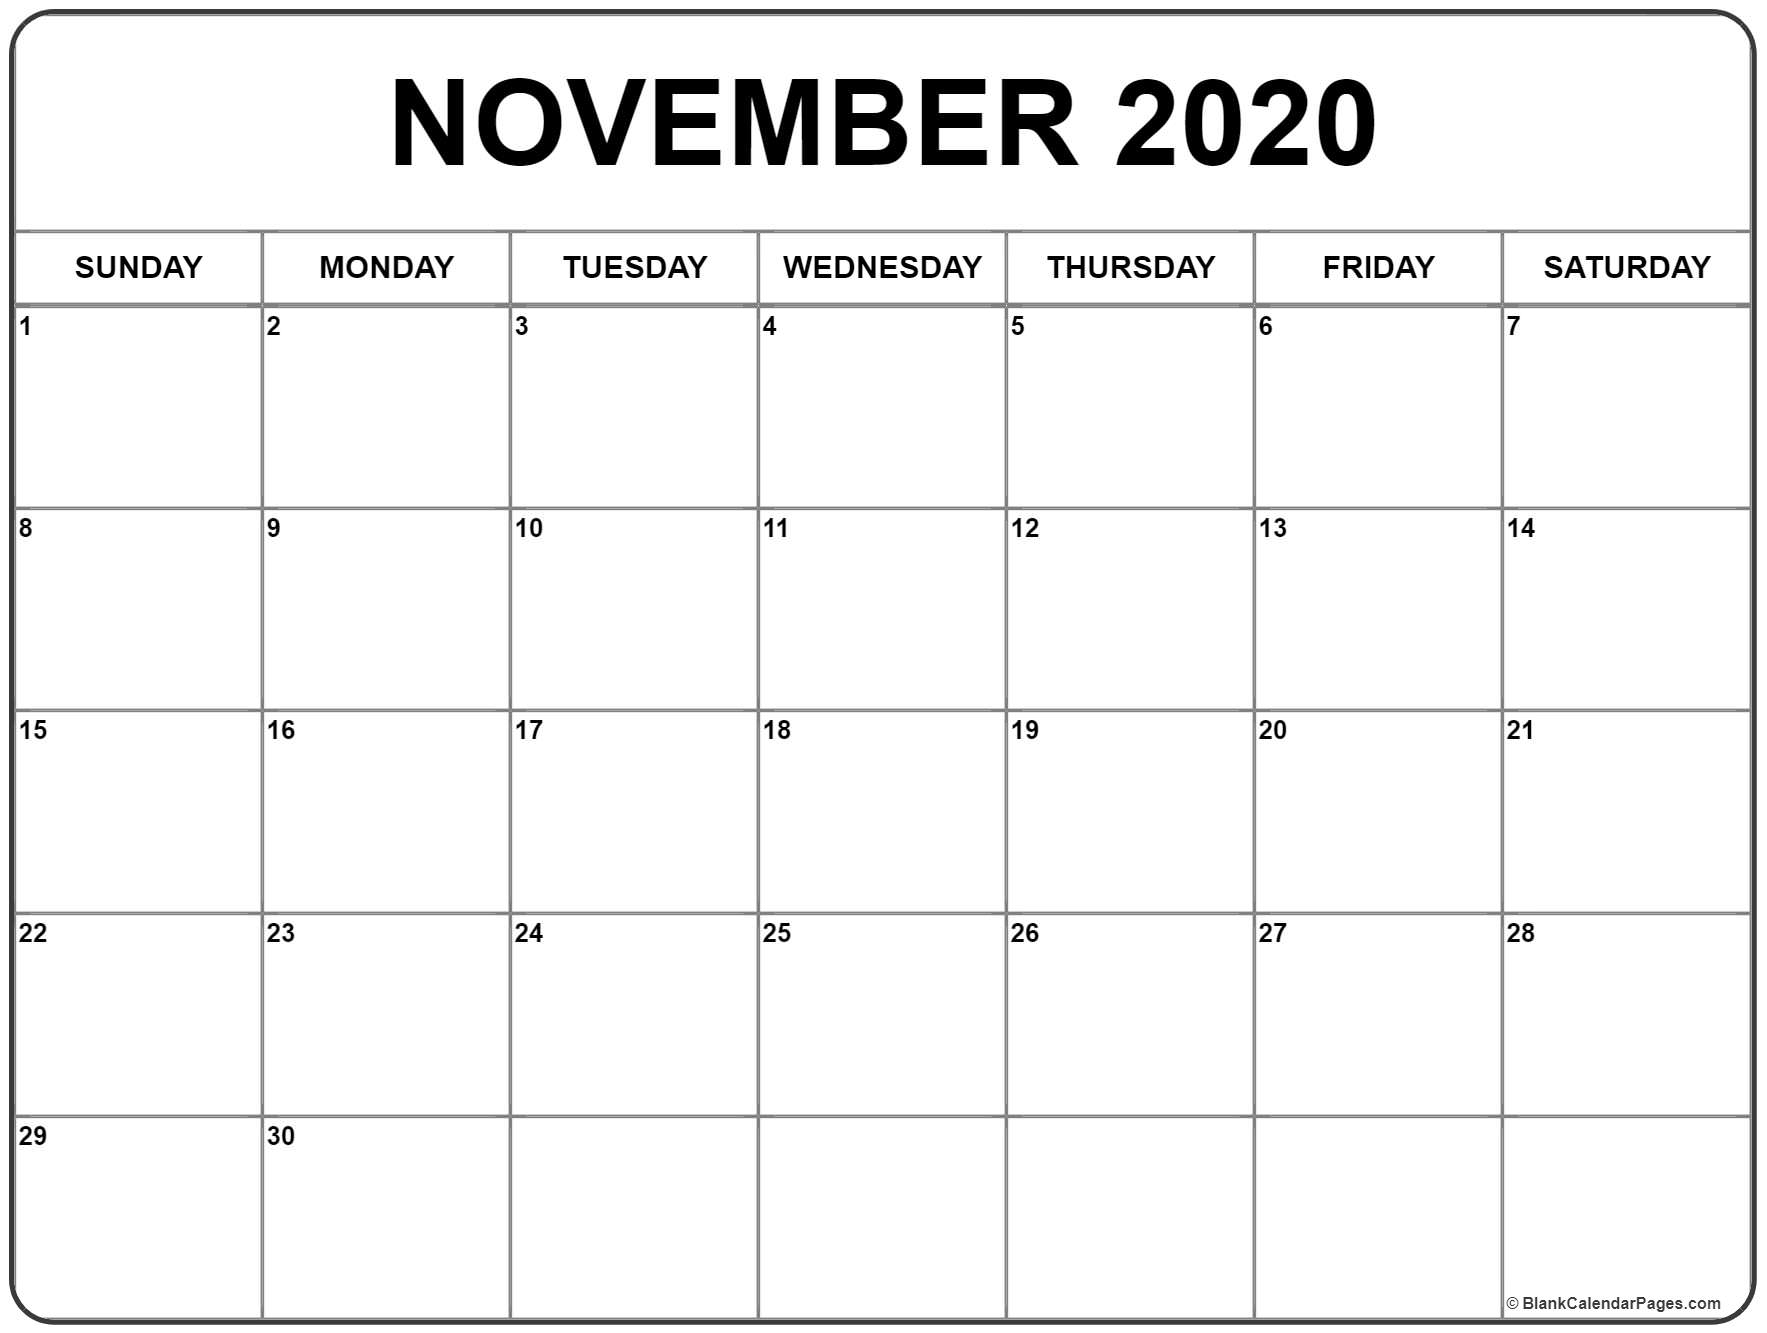 November 2020 Calendar Template  Bolan.horizonconsulting.co with regard to November 2020 Calendar Excel